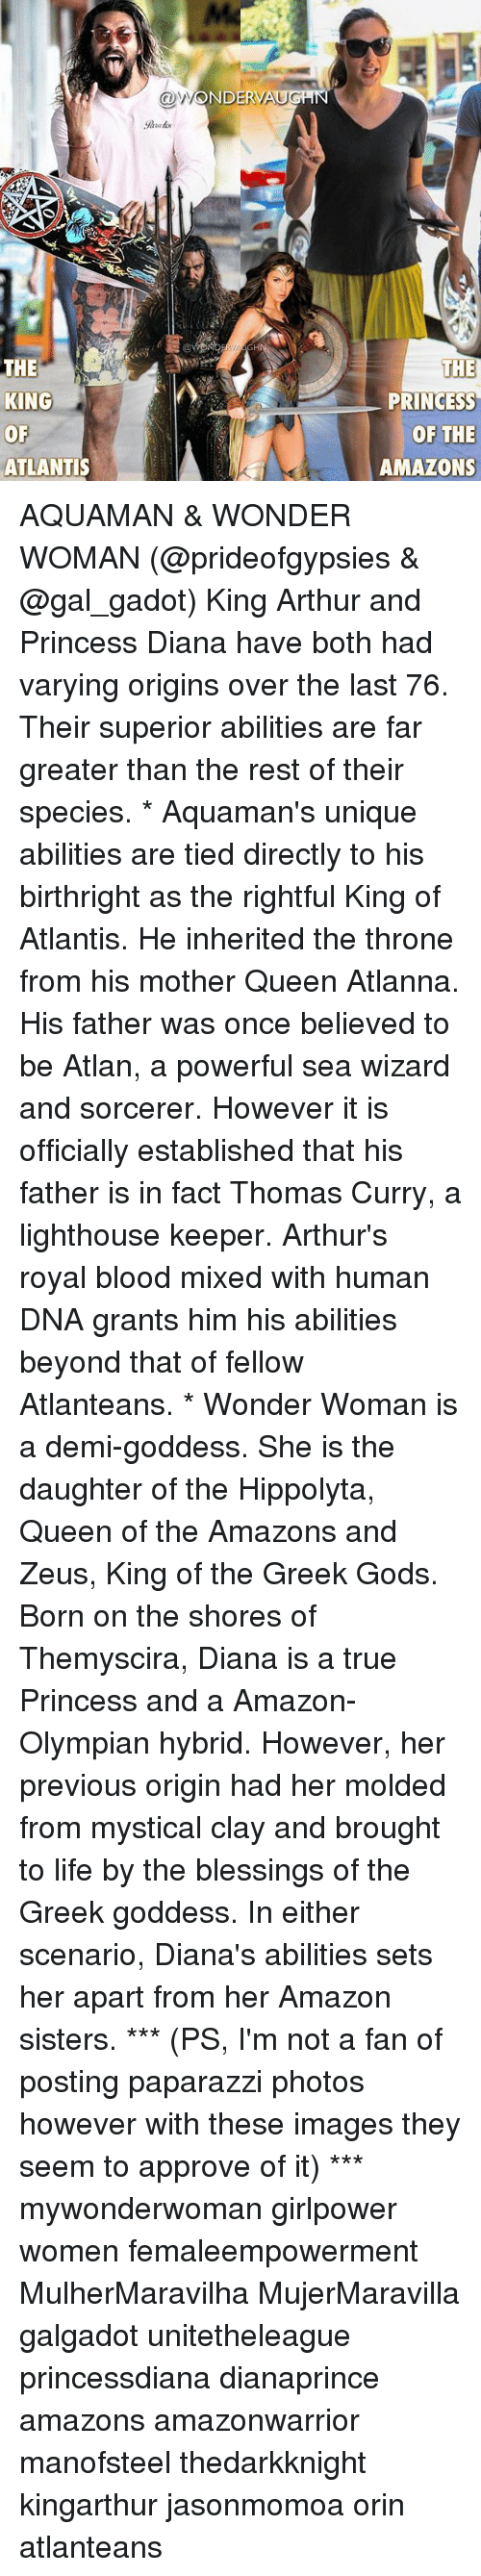 Amazon, Arthur, and Life: @WOERVAUGH  ND  Daro is  THE  KING  KING  OF  ATLANTIS  THE  PRINCESS  OF THE  AMAZONS AQUAMAN & WONDER WOMAN (@prideofgypsies & @gal_gadot) King Arthur and Princess Diana have both had varying origins over the last 76. Their superior abilities are far greater than the rest of their species. * Aquaman's unique abilities are tied directly to his birthright as the rightful King of Atlantis. He inherited the throne from his mother Queen Atlanna. His father was once believed to be Atlan, a powerful sea wizard and sorcerer. However it is officially established that his father is in fact Thomas Curry, a lighthouse keeper. Arthur's royal blood mixed with human DNA grants him his abilities beyond that of fellow Atlanteans. * Wonder Woman is a demi-goddess. She is the daughter of the Hippolyta, Queen of the Amazons and Zeus, King of the Greek Gods. Born on the shores of Themyscira, Diana is a true Princess and a Amazon-Olympian hybrid. However, her previous origin had her molded from mystical clay and brought to life by the blessings of the Greek goddess. In either scenario, Diana's abilities sets her apart from her Amazon sisters. *** (PS, I'm not a fan of posting paparazzi photos however with these images they seem to approve of it) *** mywonderwoman girlpower women femaleempowerment MulherMaravilha MujerMaravilla galgadot unitetheleague princessdiana dianaprince amazons amazonwarrior manofsteel thedarkknight kingarthur jasonmomoa orin atlanteans